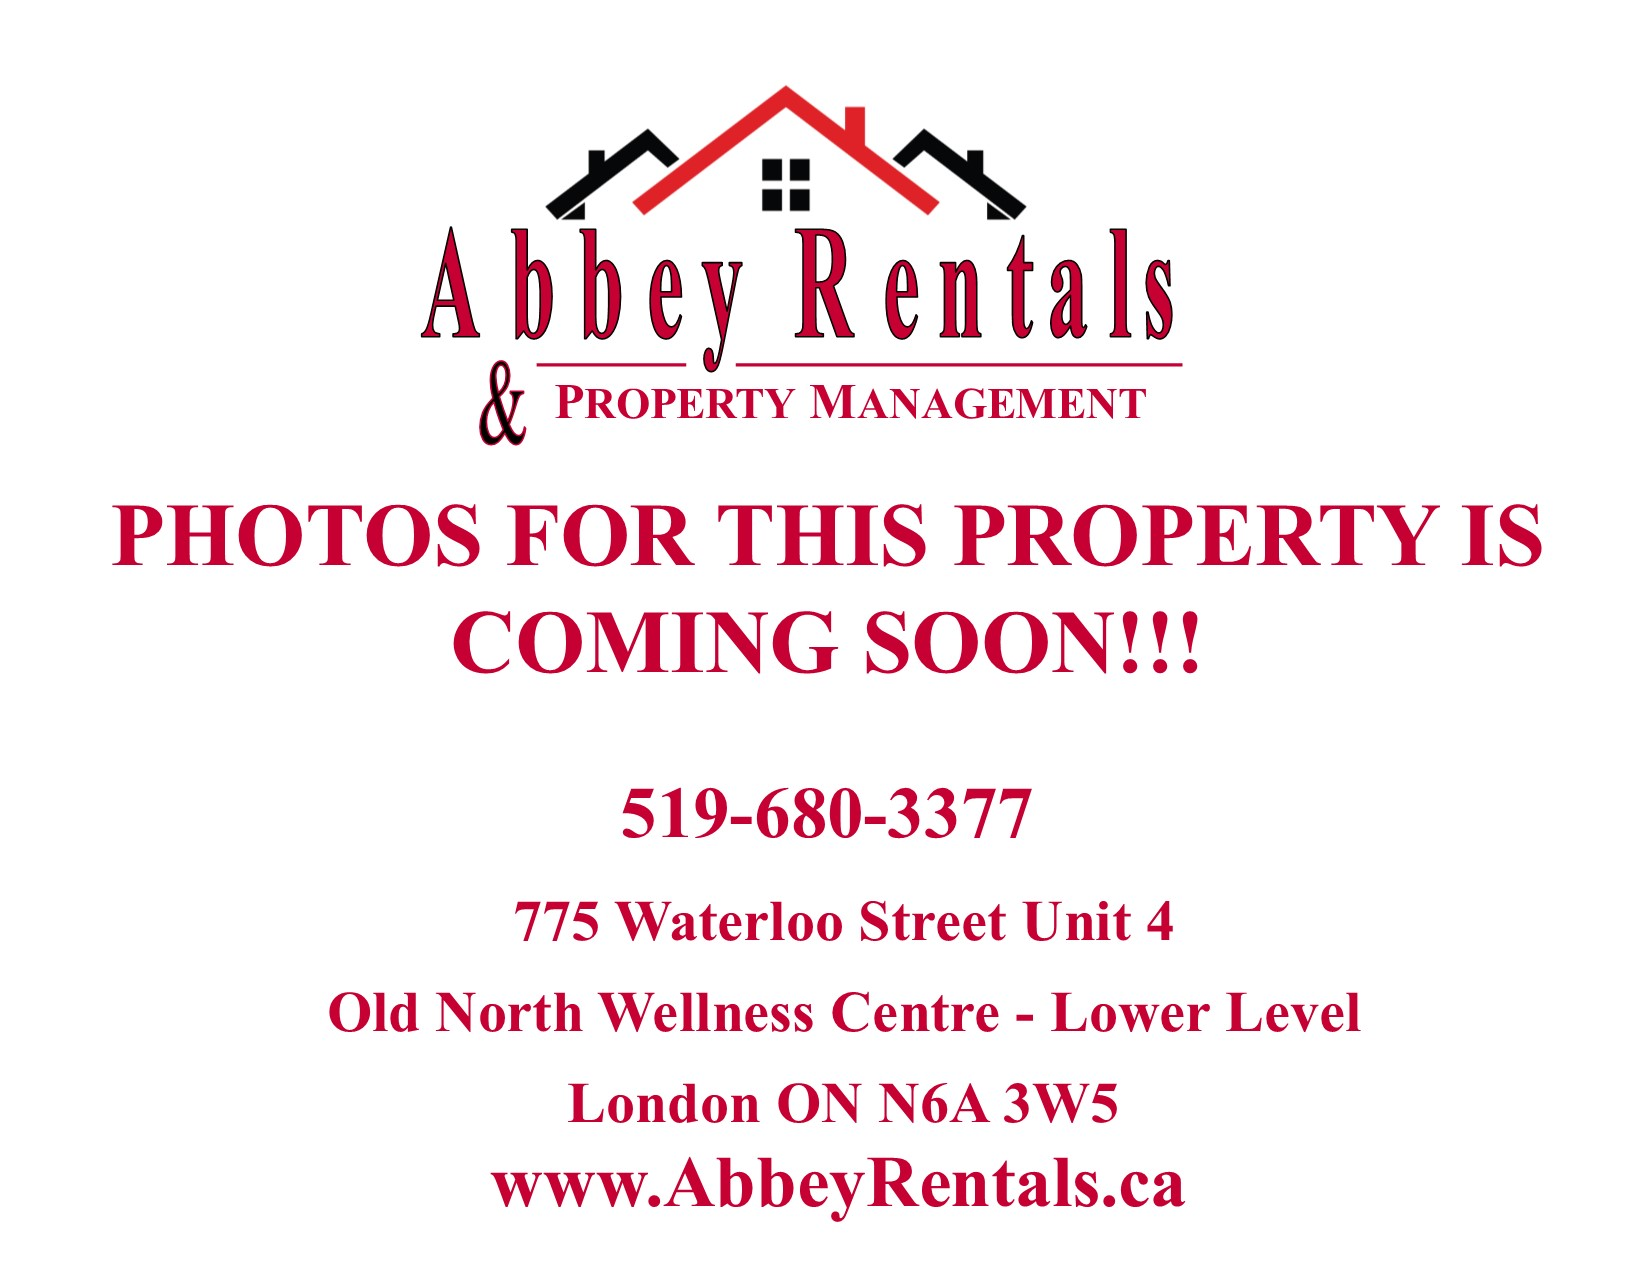 Bachelor unit located on the 3rd floor near Downtown London